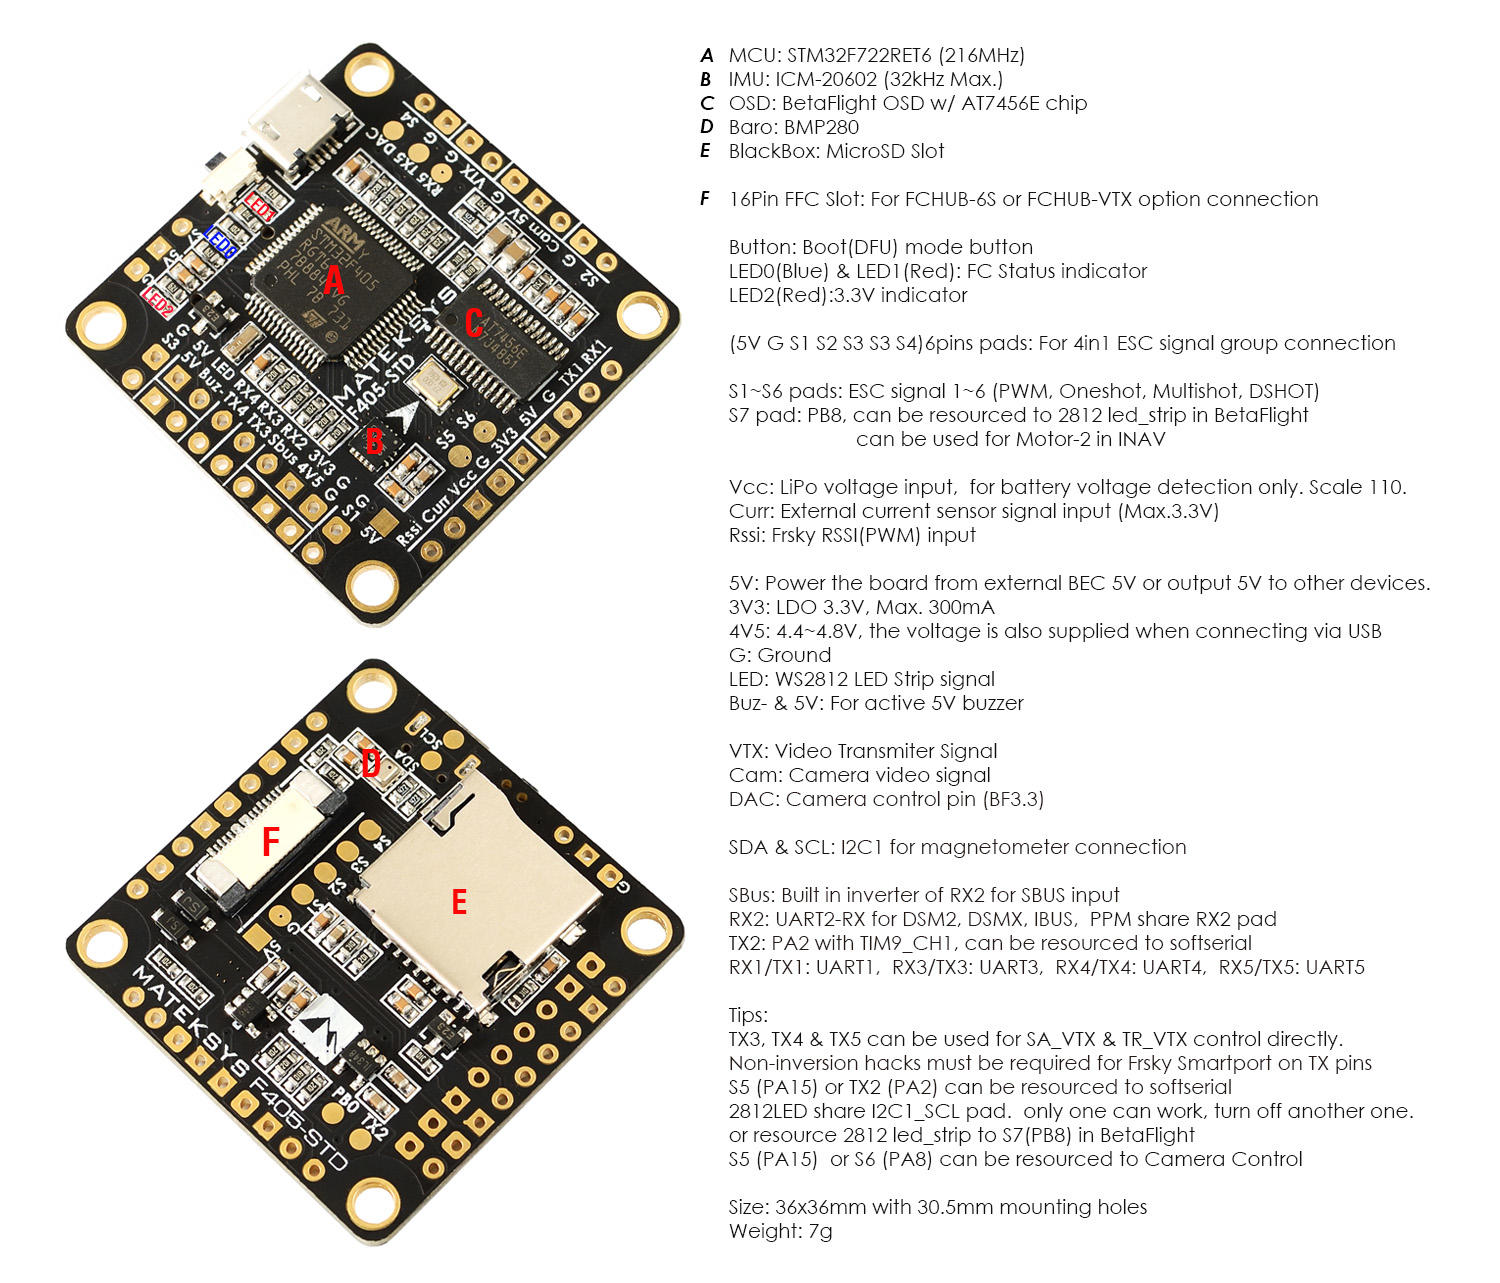 Matek F405-STD Flight controller layout